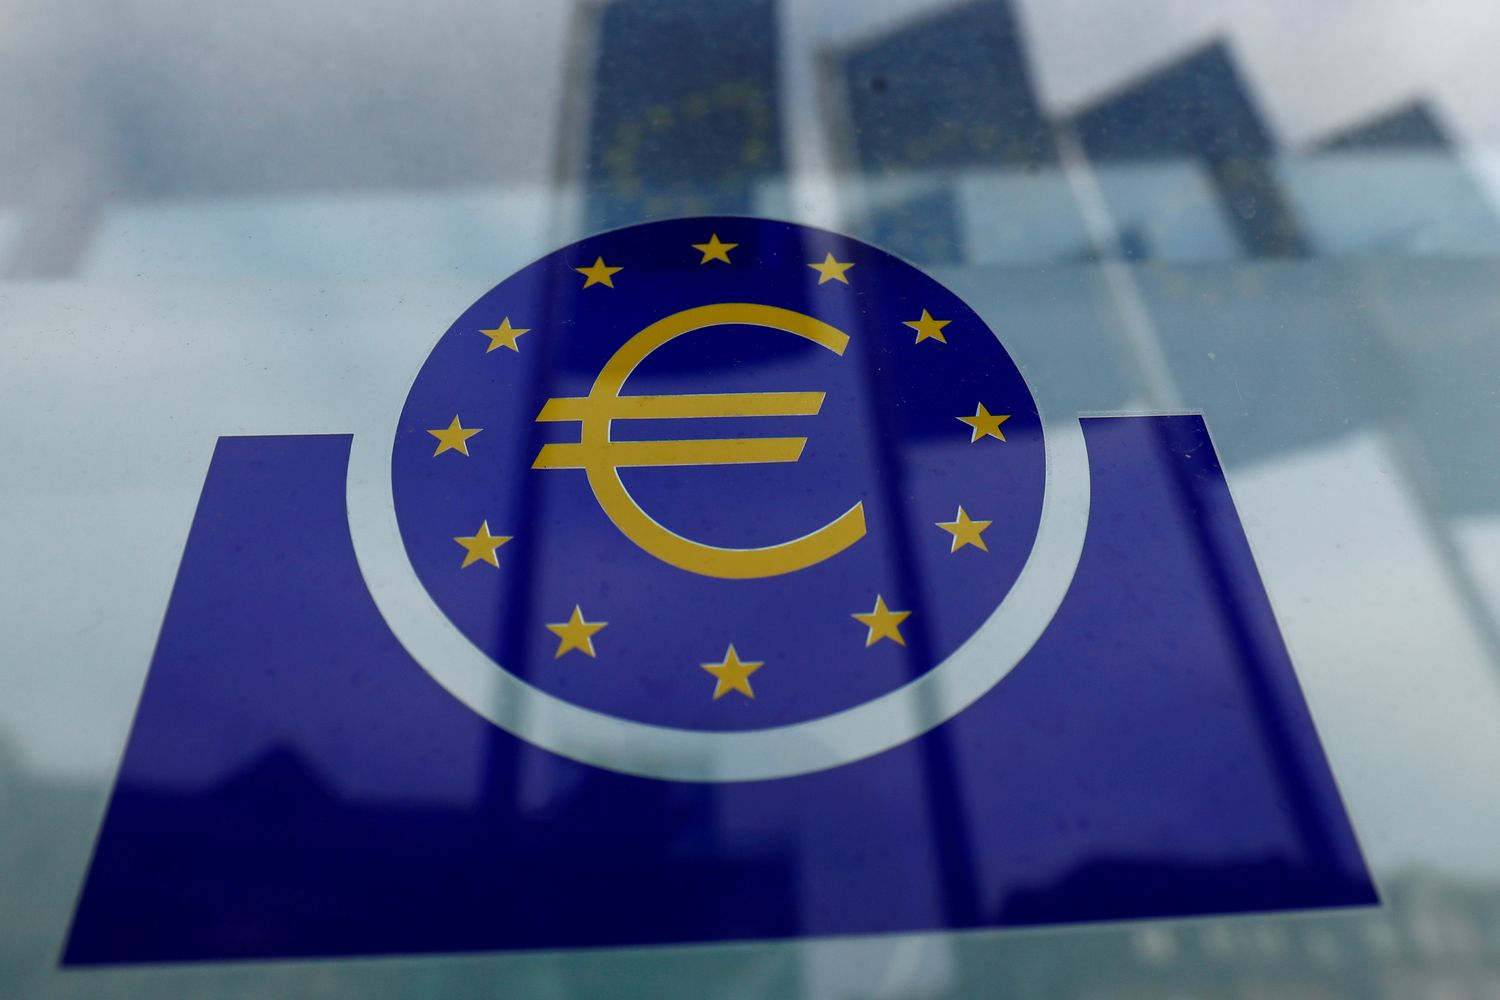 The European Central Bank logo is seen in Frankfurt on Jan 23. (Reuters photo)